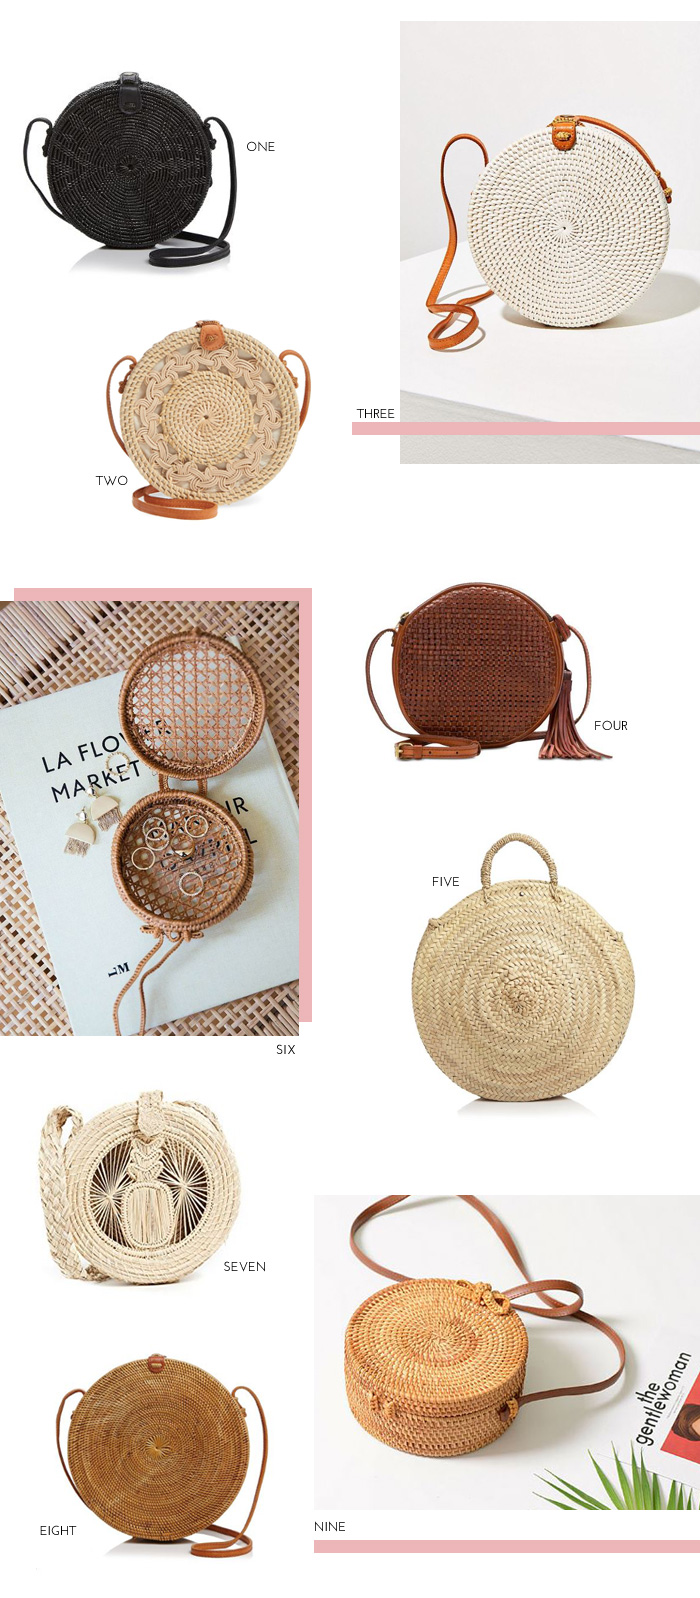 Circle Woven and Wicker Bags Under $150